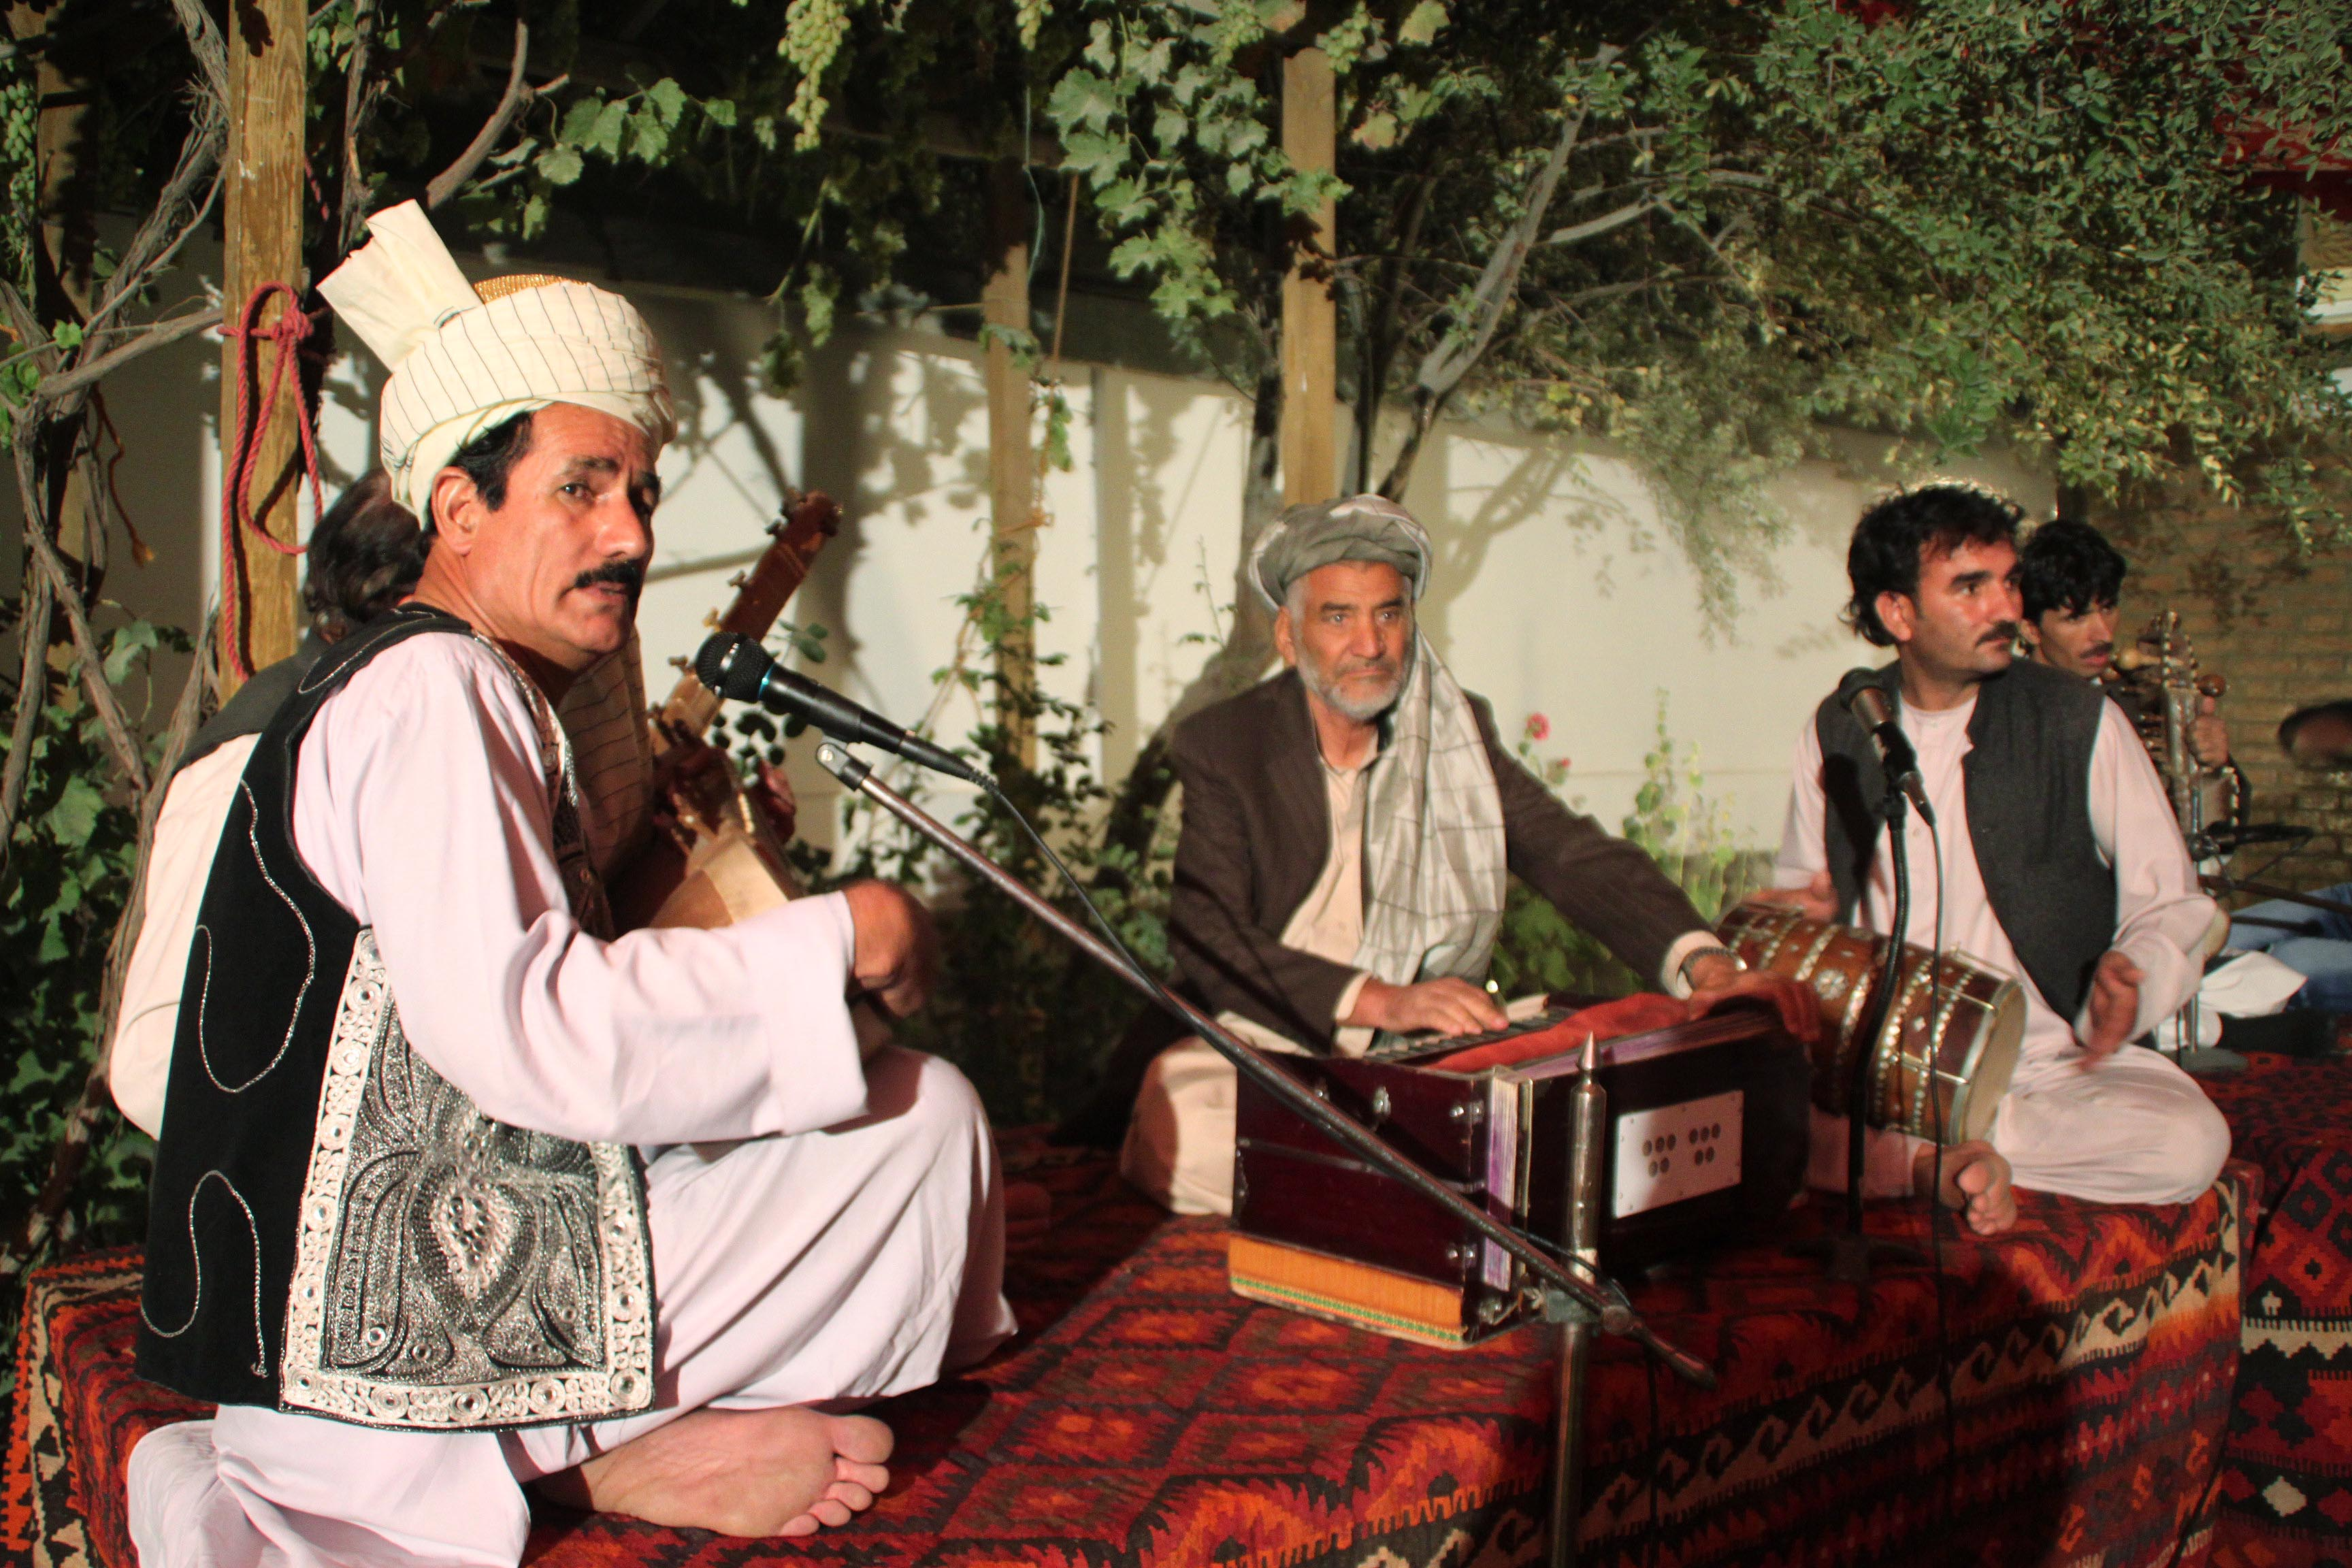 Preserving traditional music.